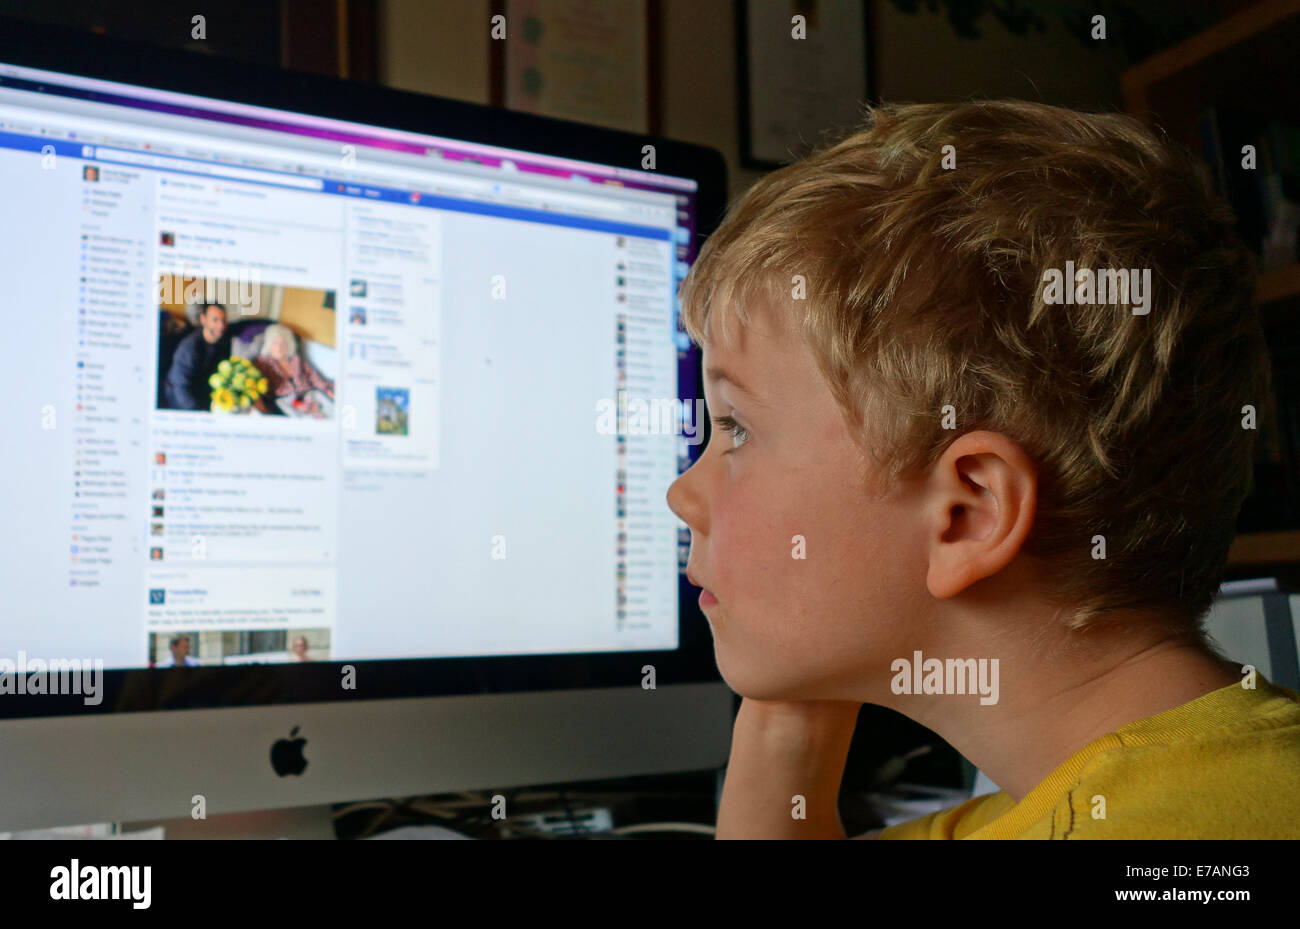 Child children boy looking at Facebook on home computer social media Uk - Stock Image